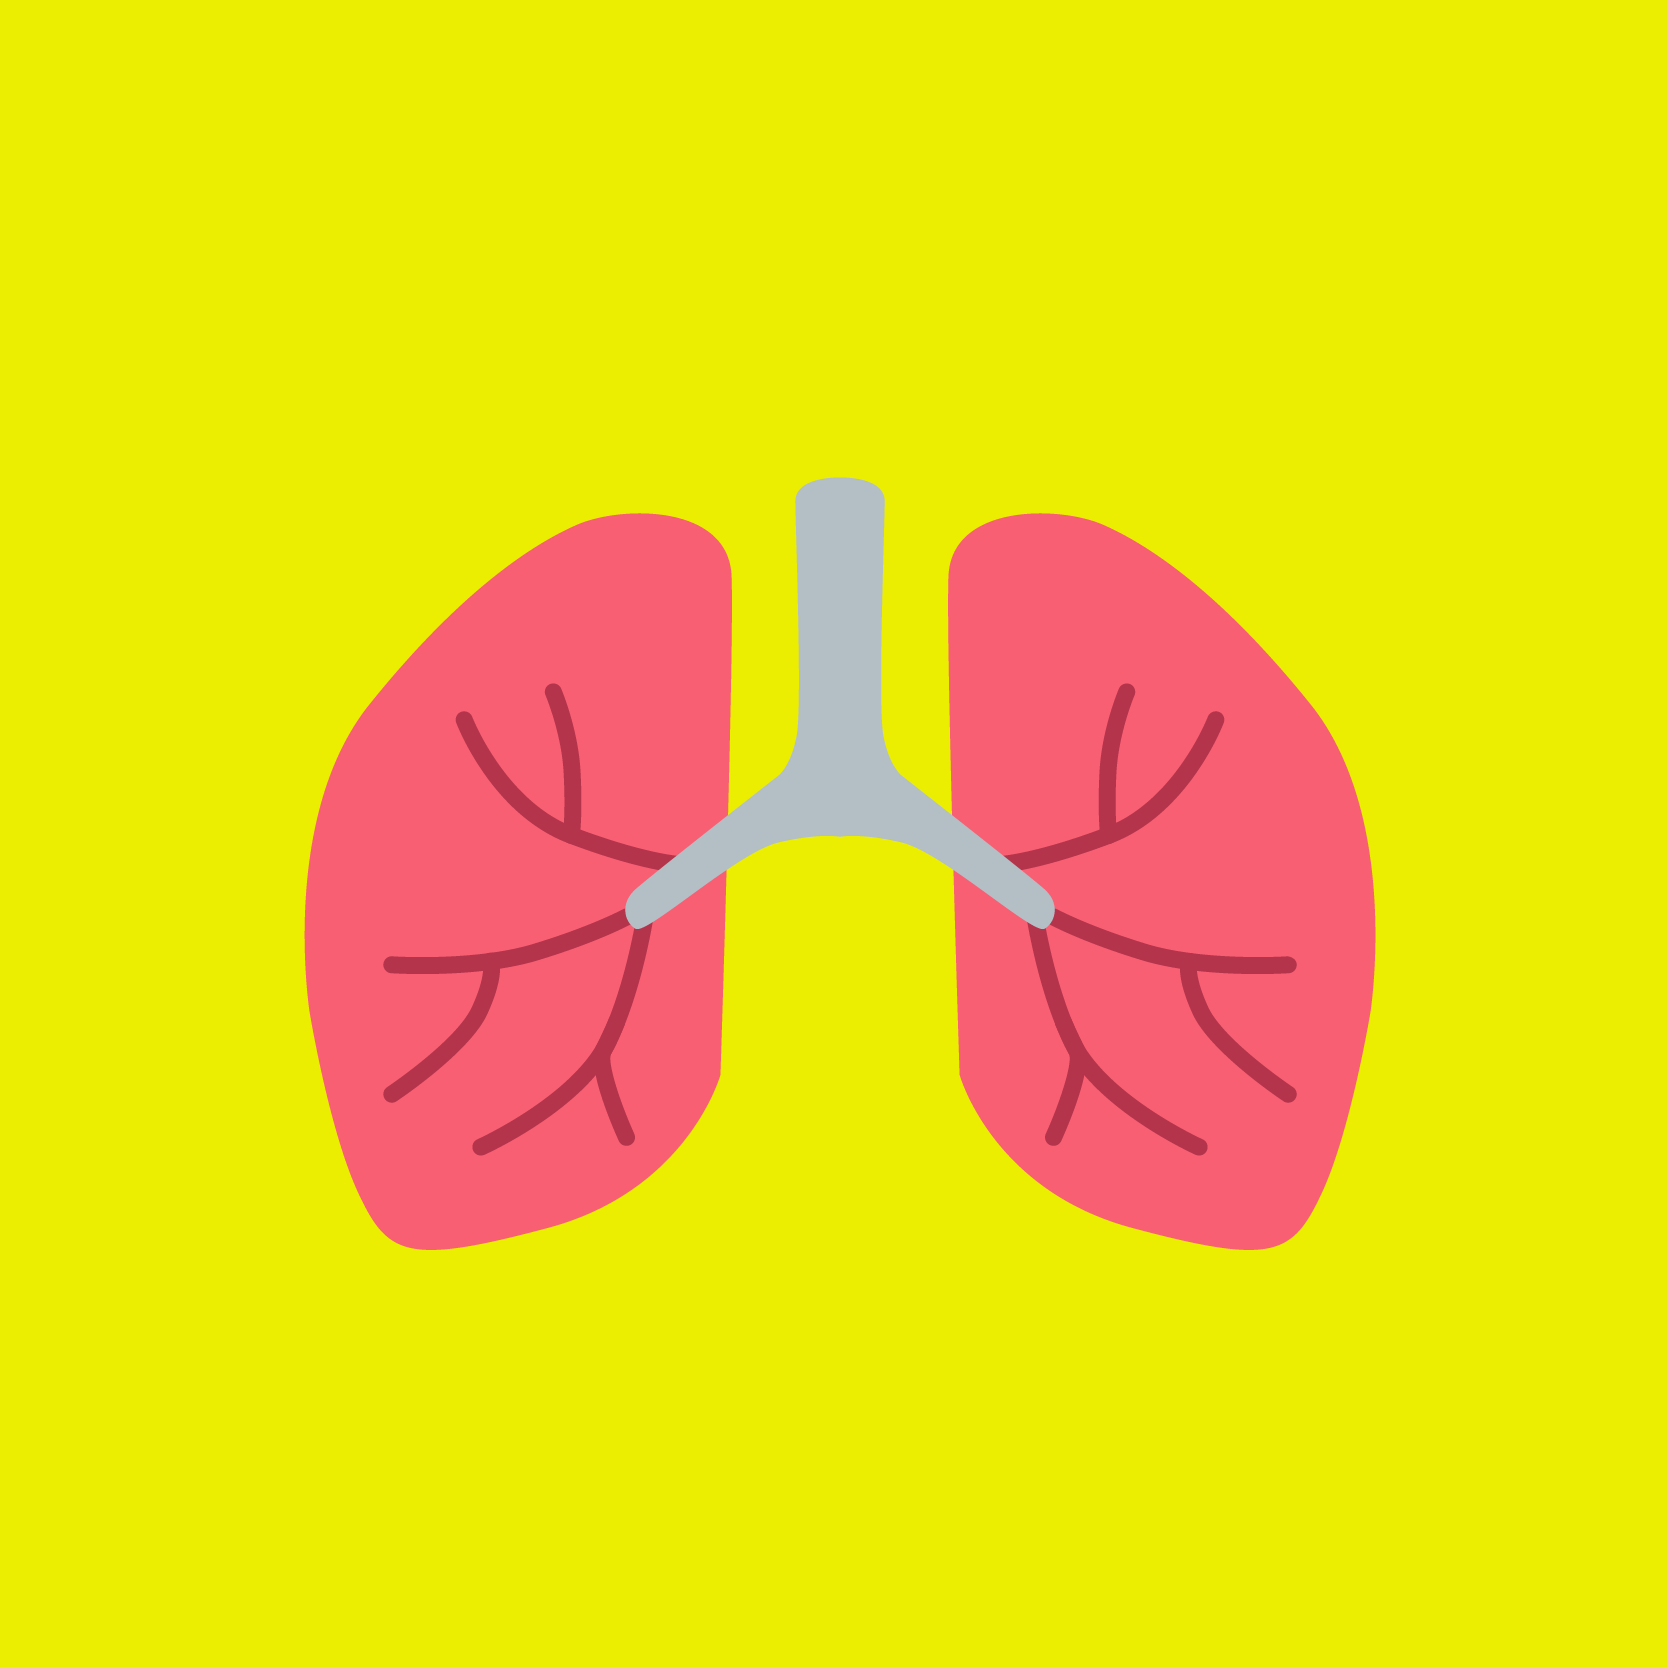 Educate the community about asthma